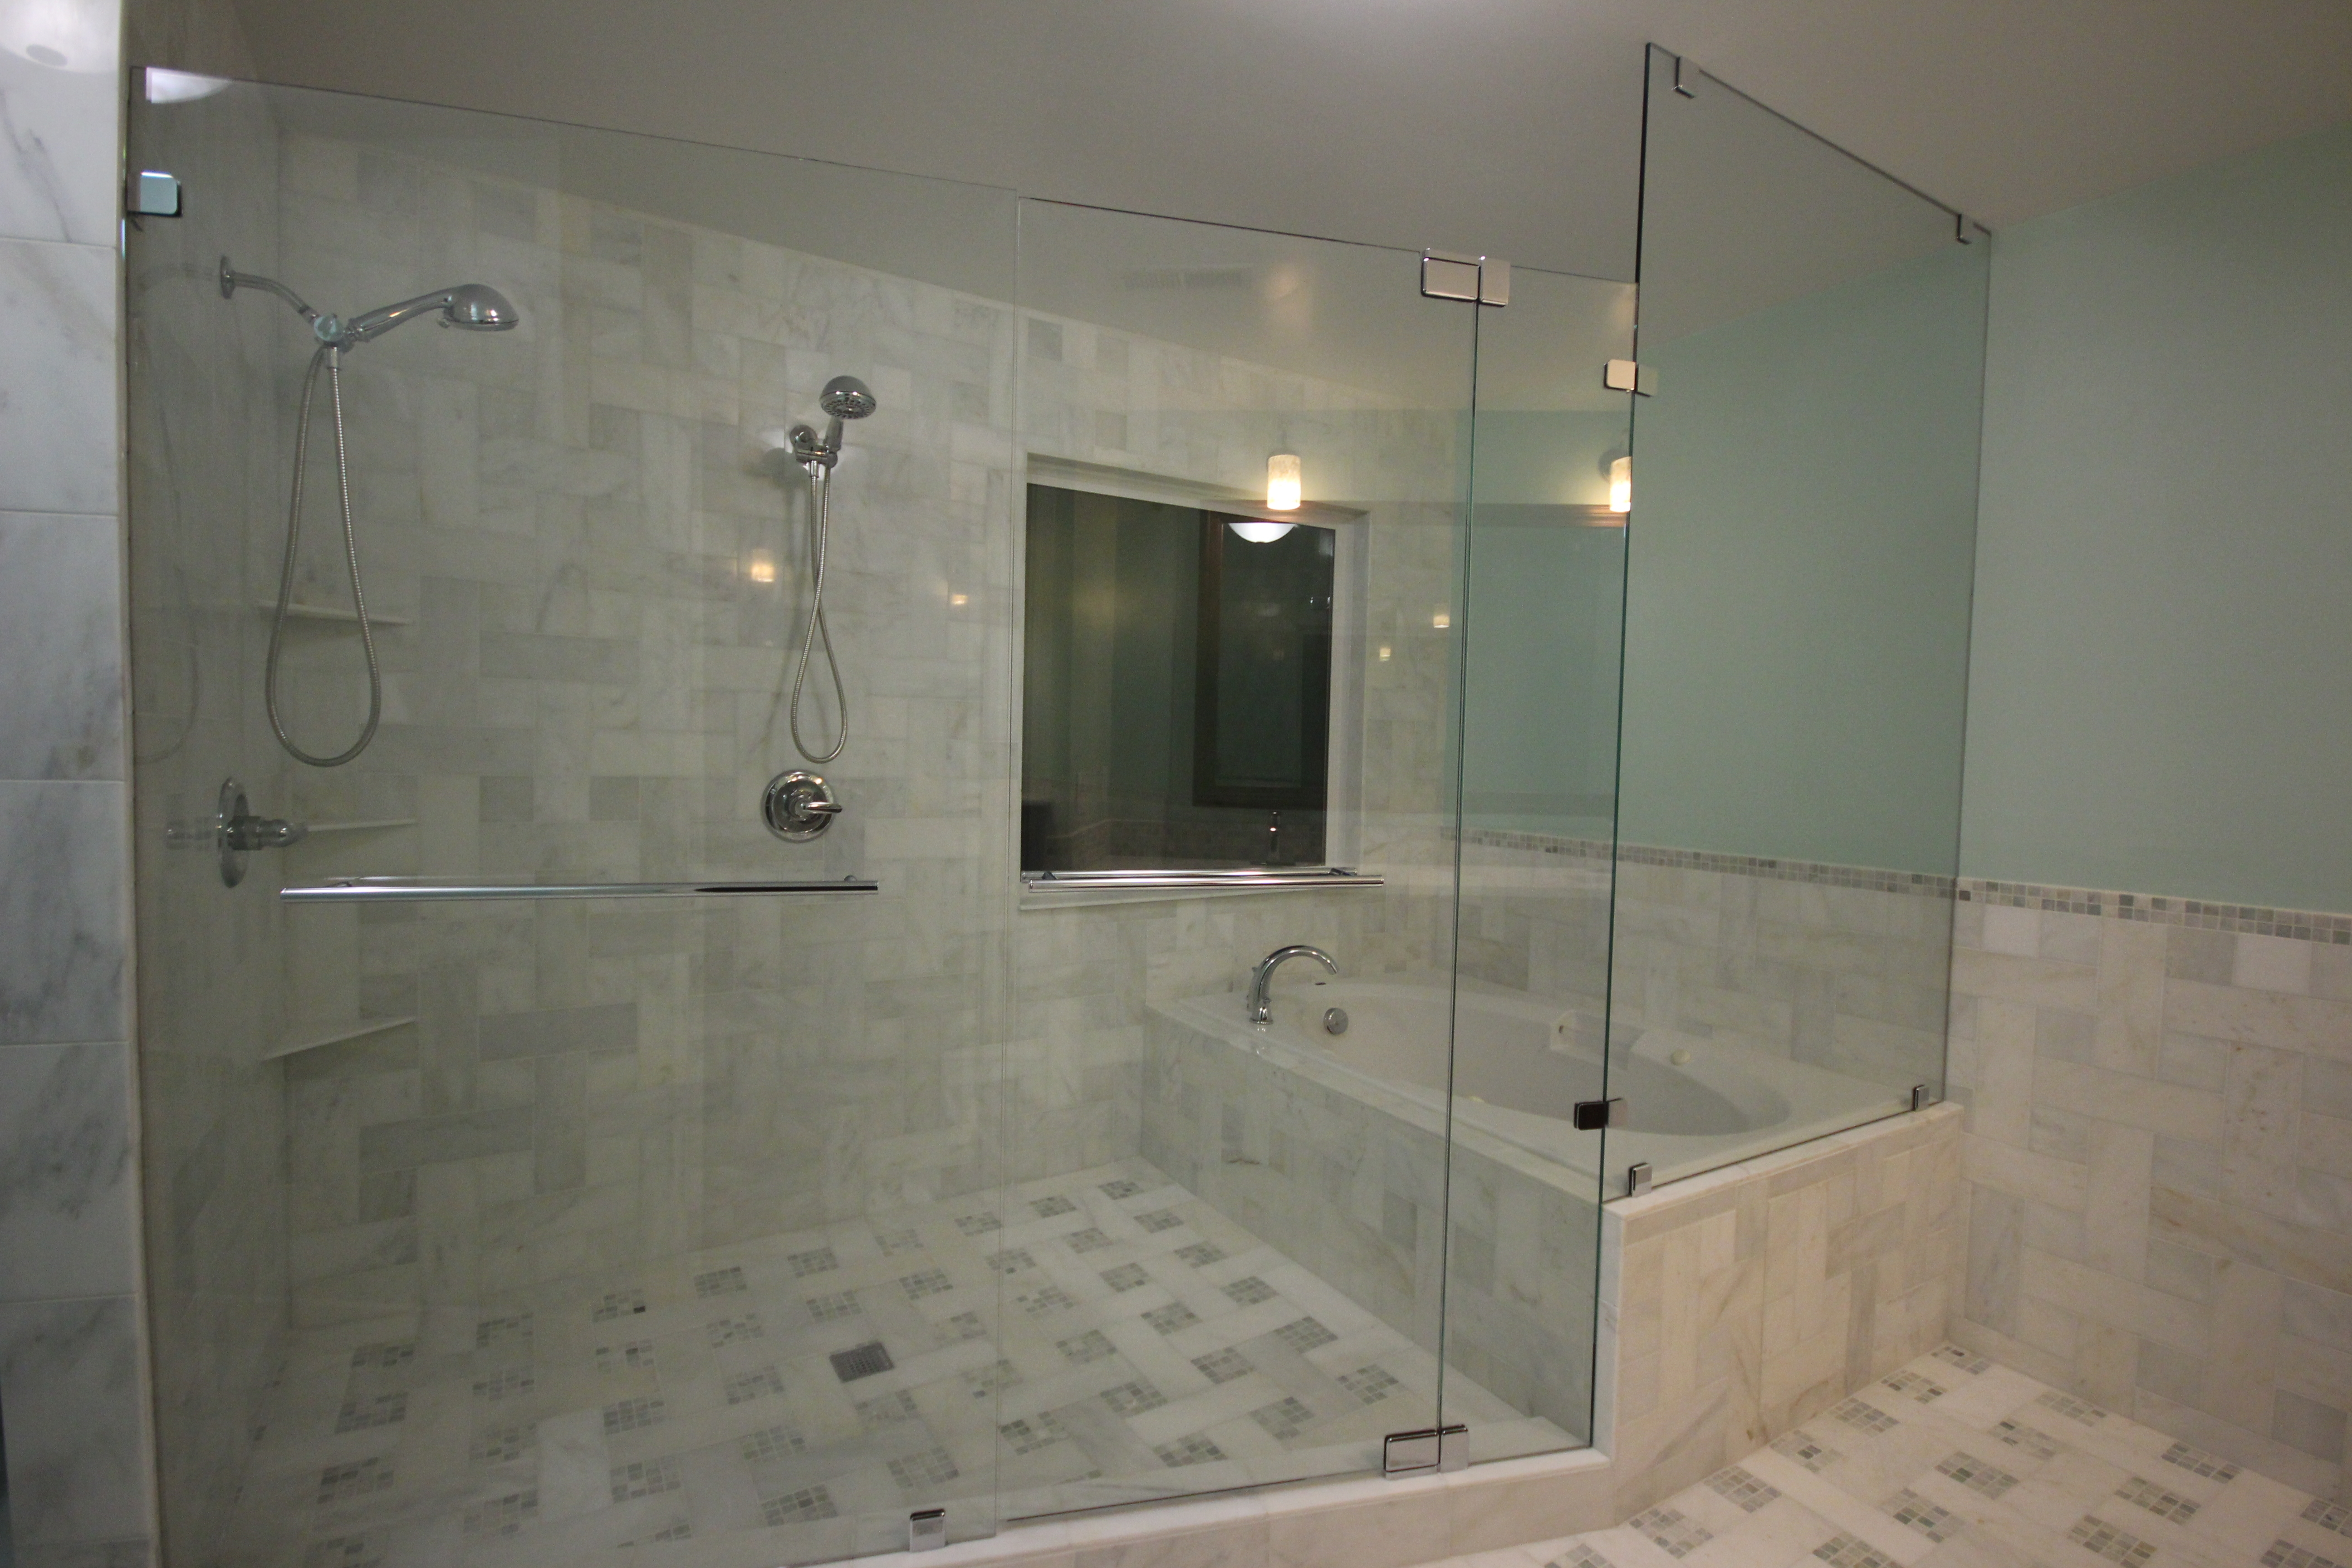 Wet Room Bathroom Doorcustom shower door with tub enclosed in wet room featured on